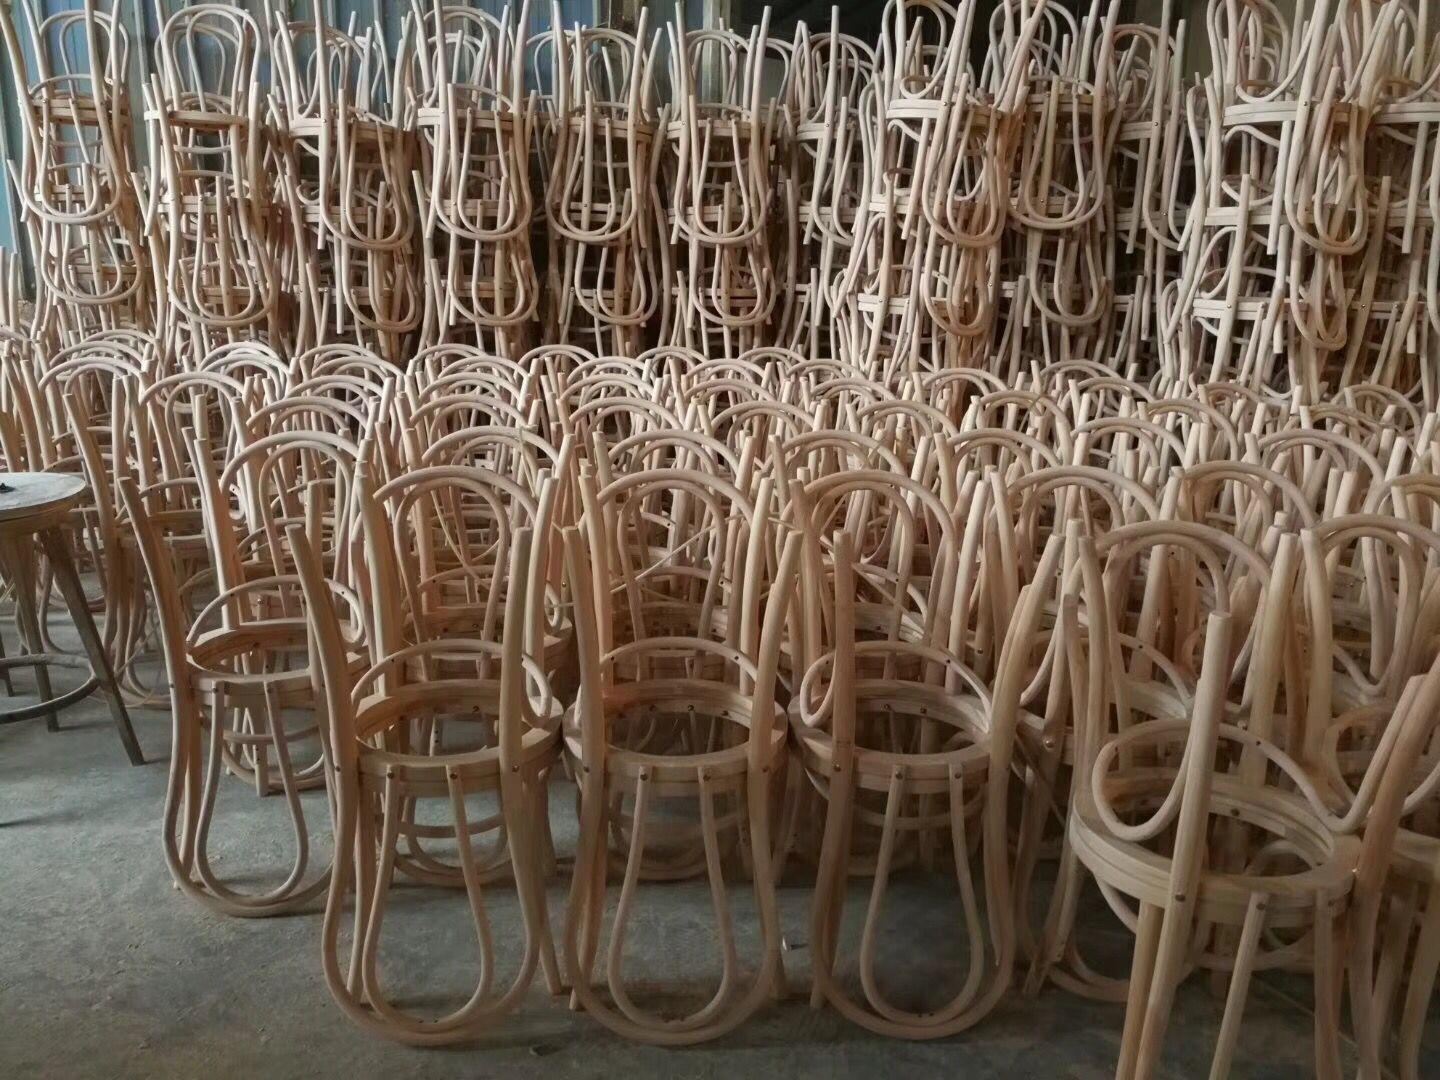 2019 Vintage Stackable Bentwood Wedding Dining Chairs For Events From Cateringfurniture168 33 17 Dhgate Com